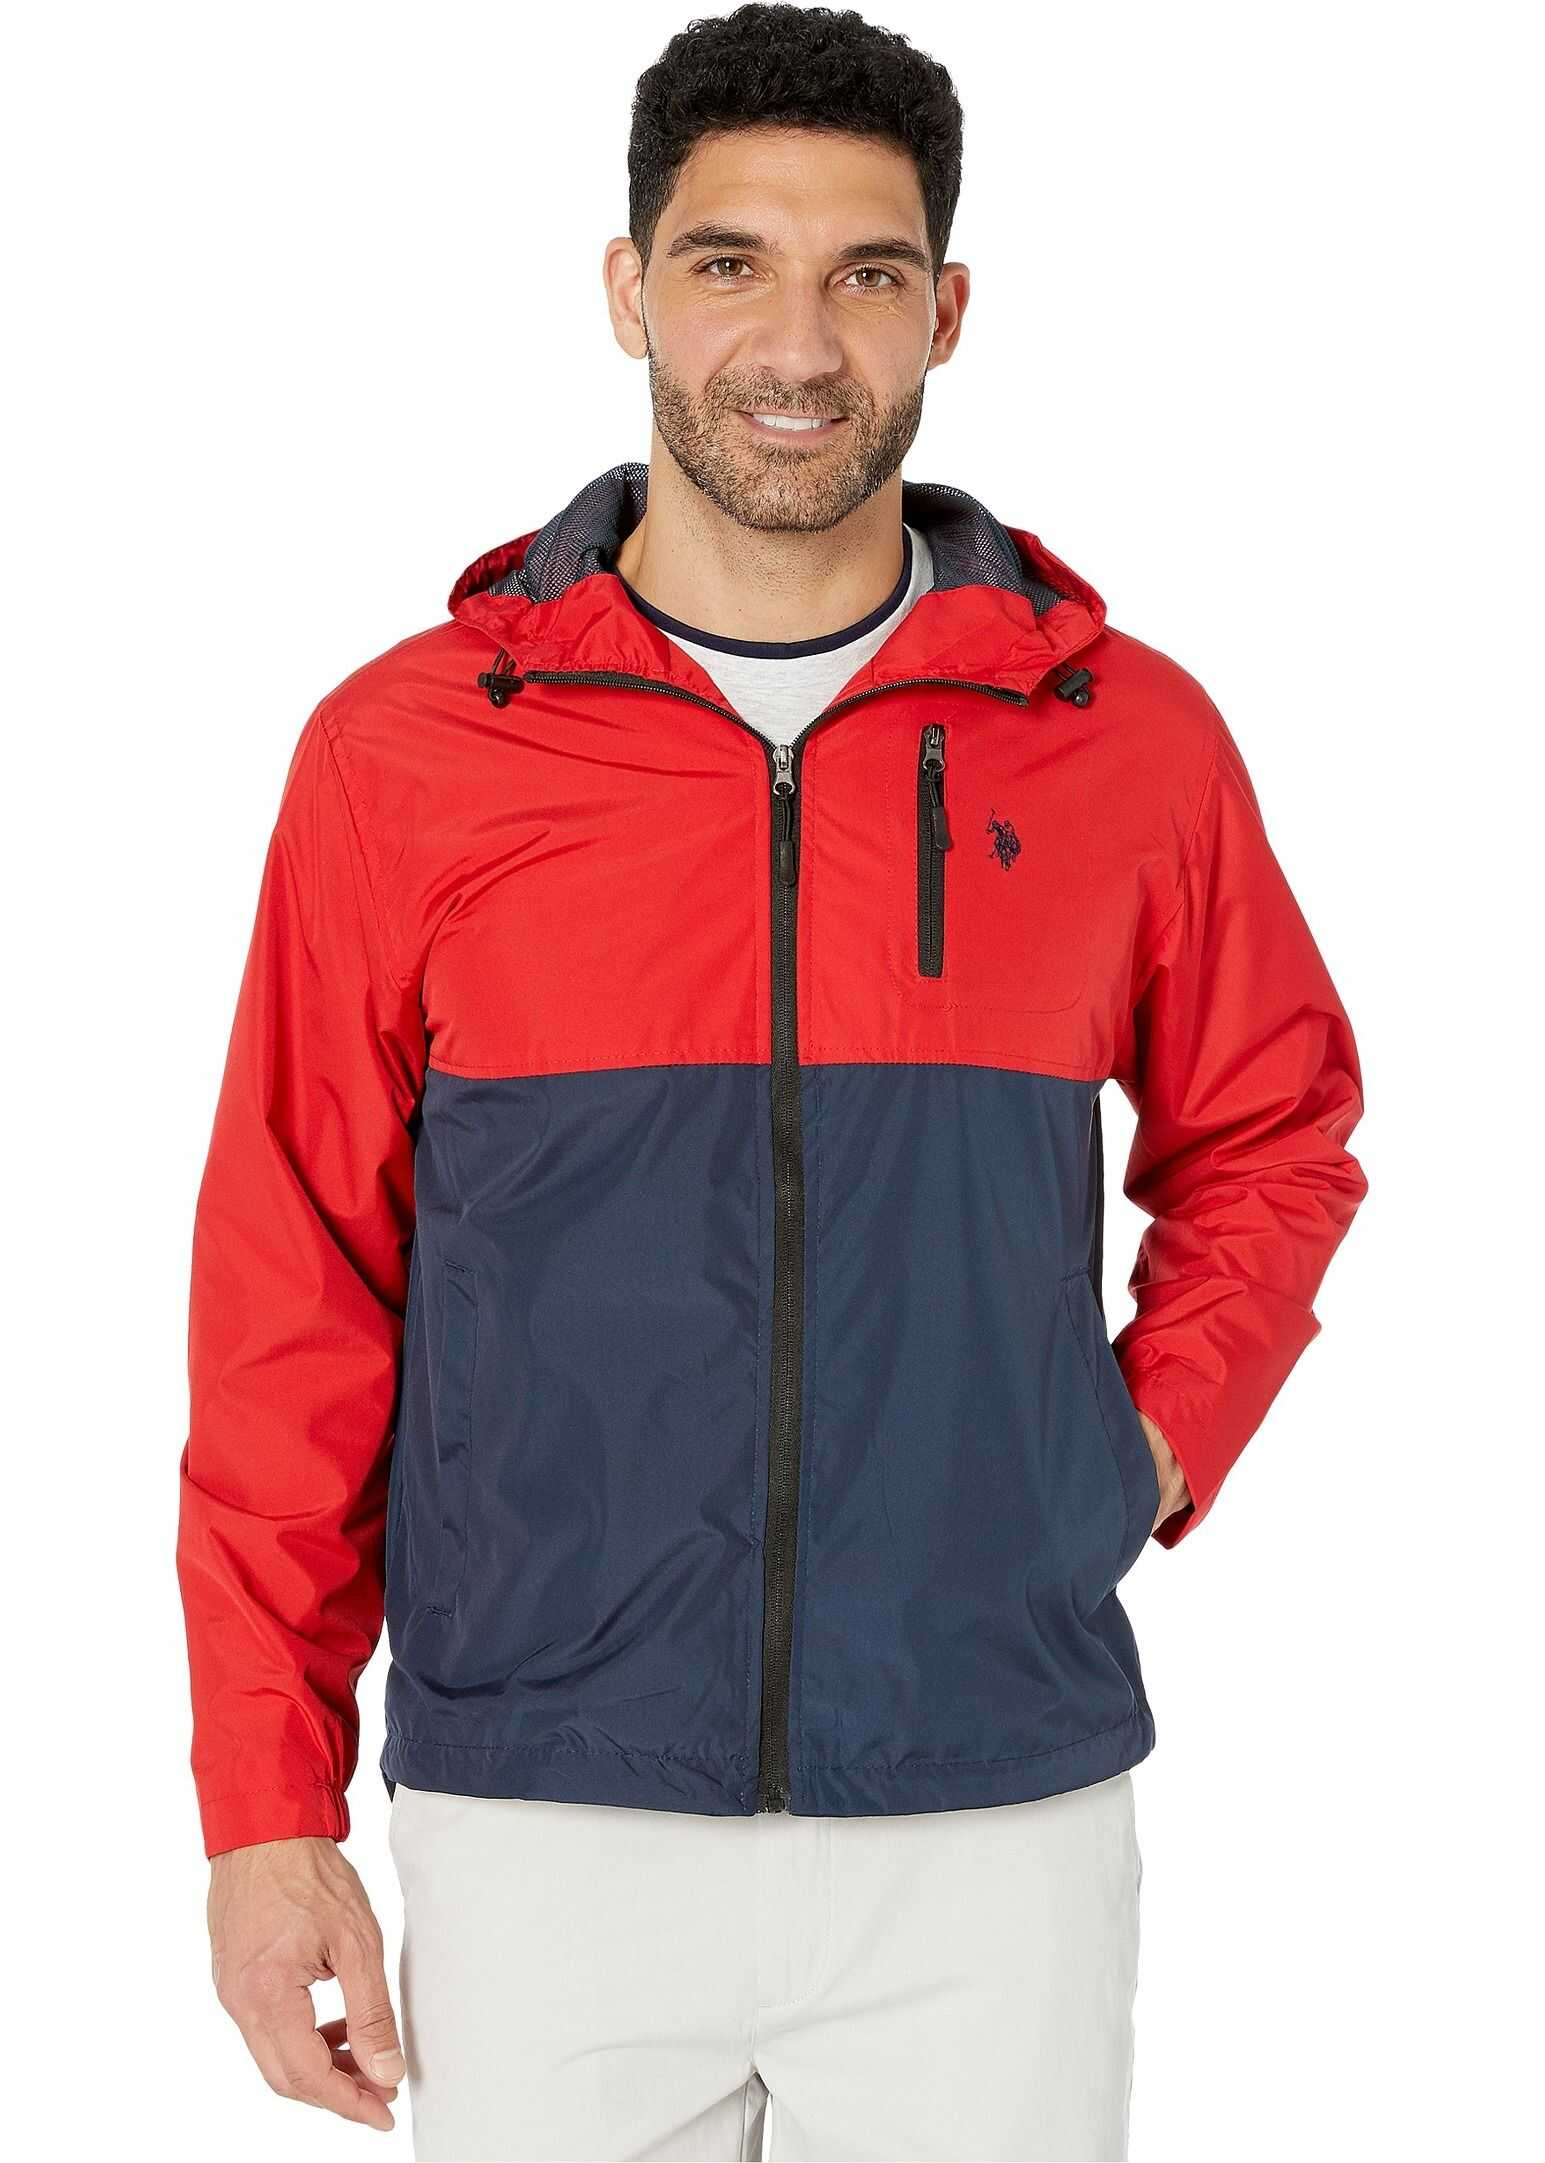 U.S. POLO ASSN. Color Block Windbreaker w/ Hood Classic Navy